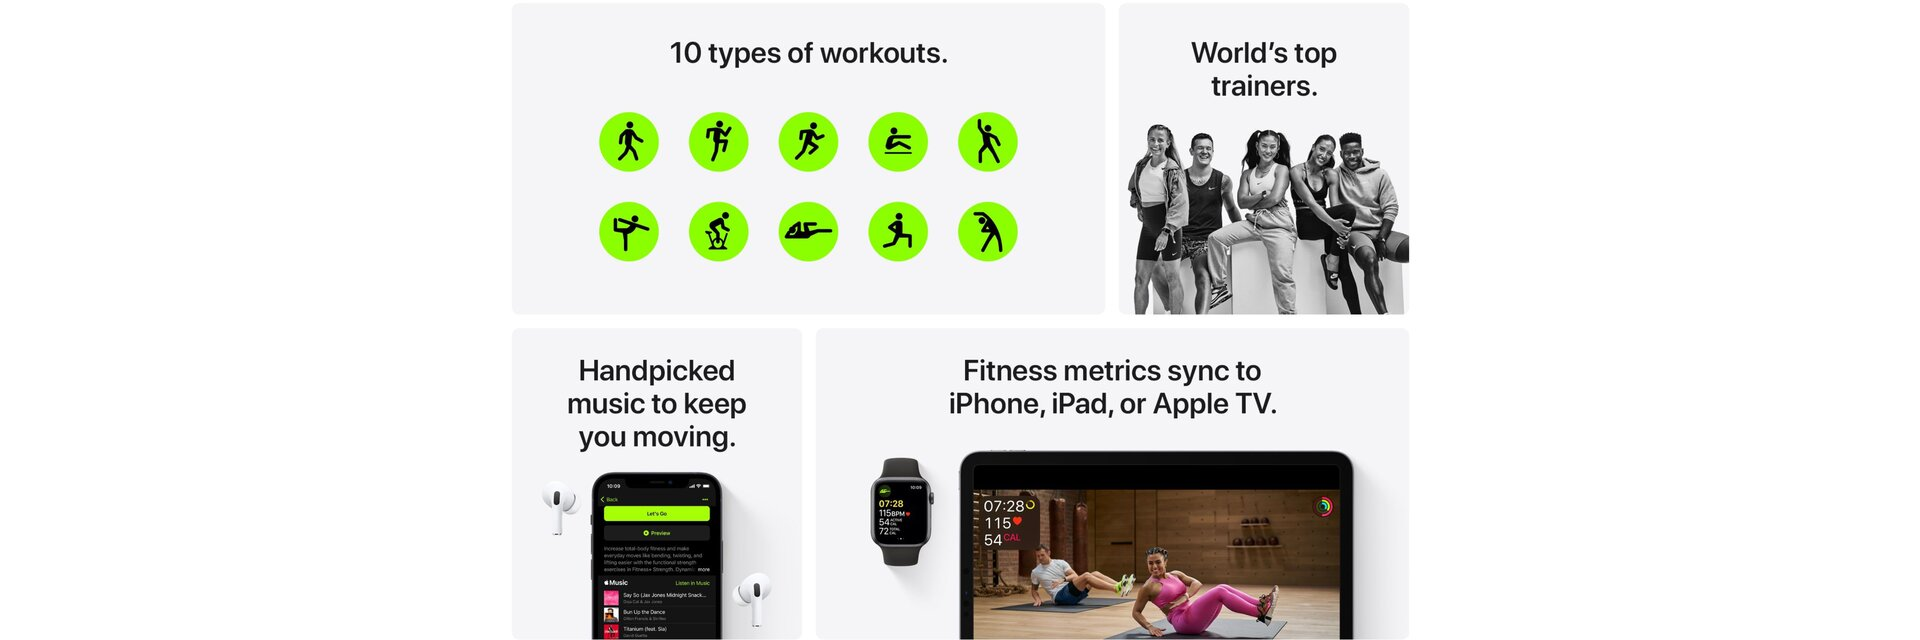 Apple Fitness+ Overview showing the benefits of the service.